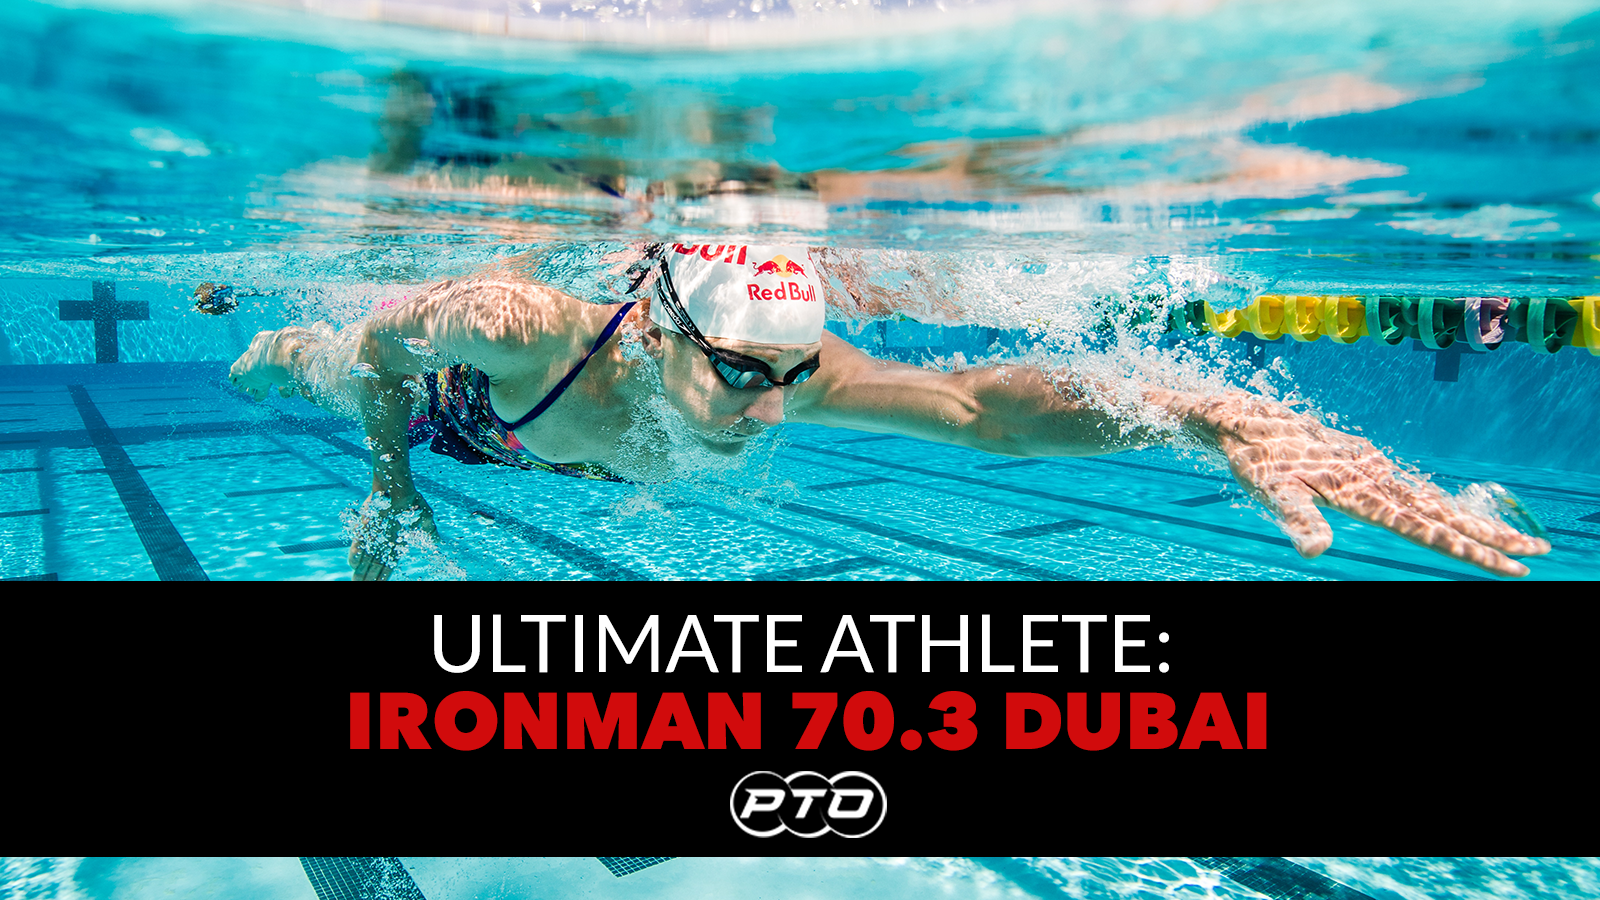 Ultimate Athlete: Ironman 70.3 Dubai